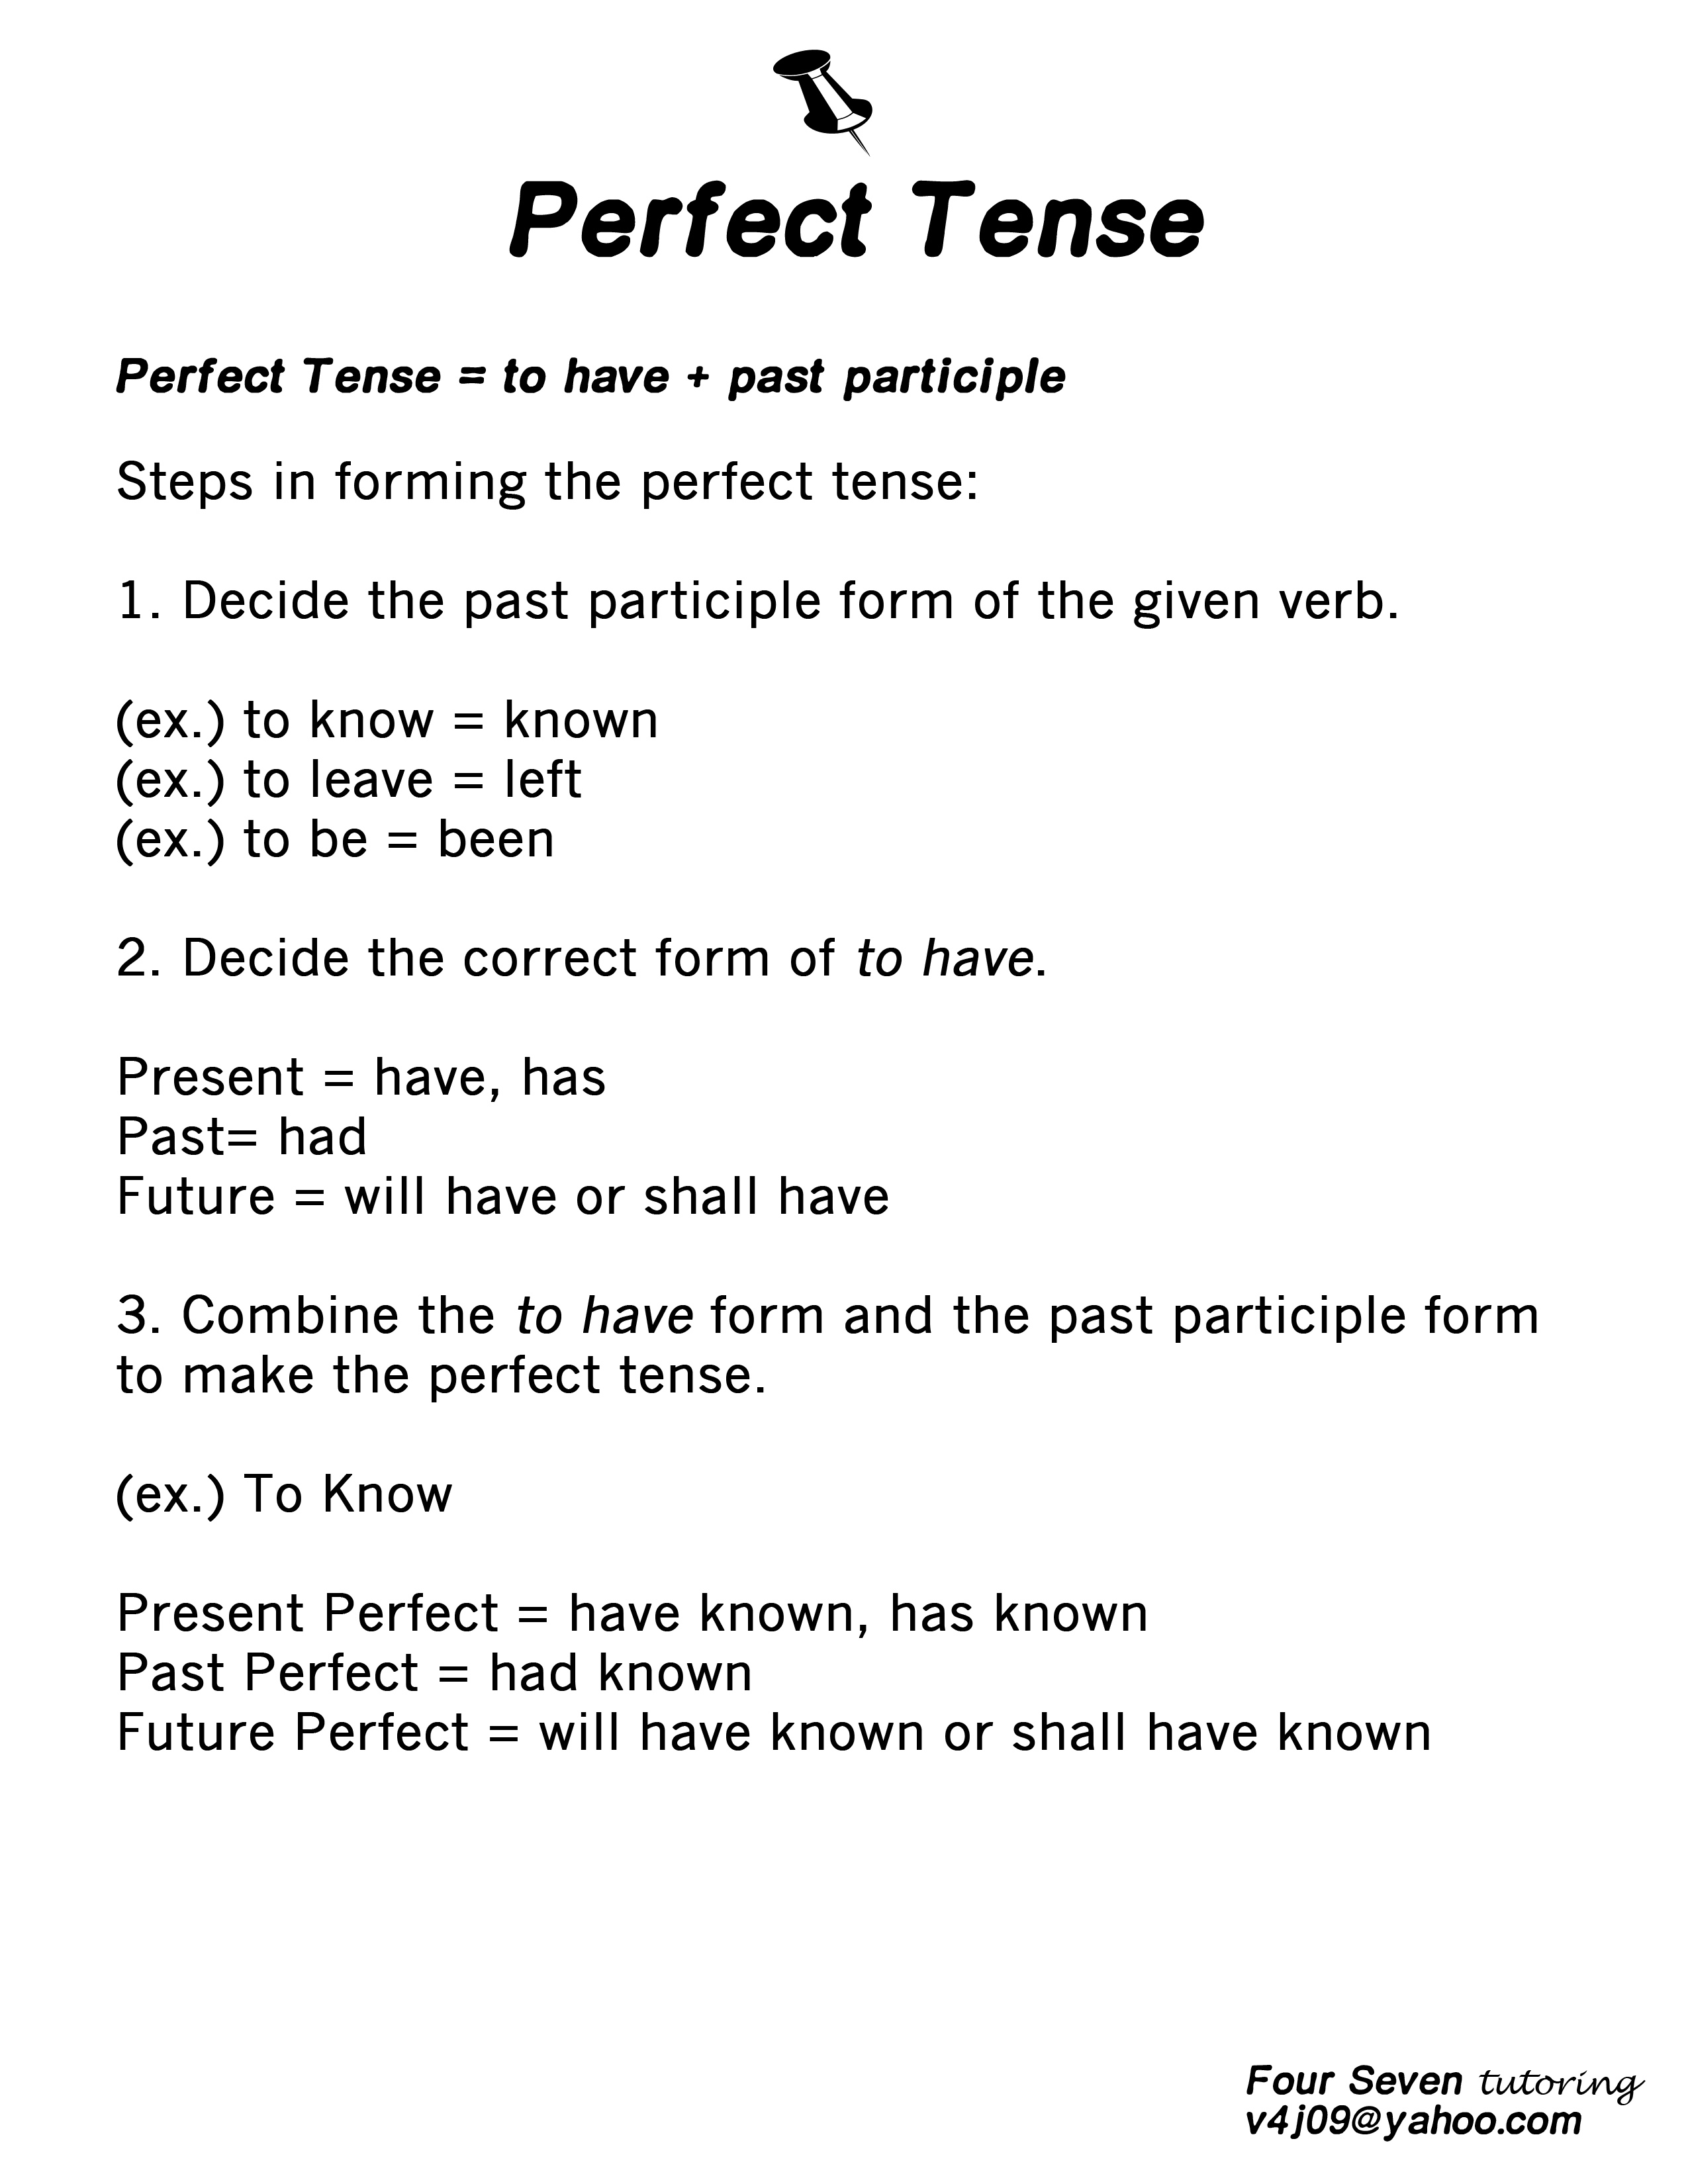 The Perfect Tense Resource